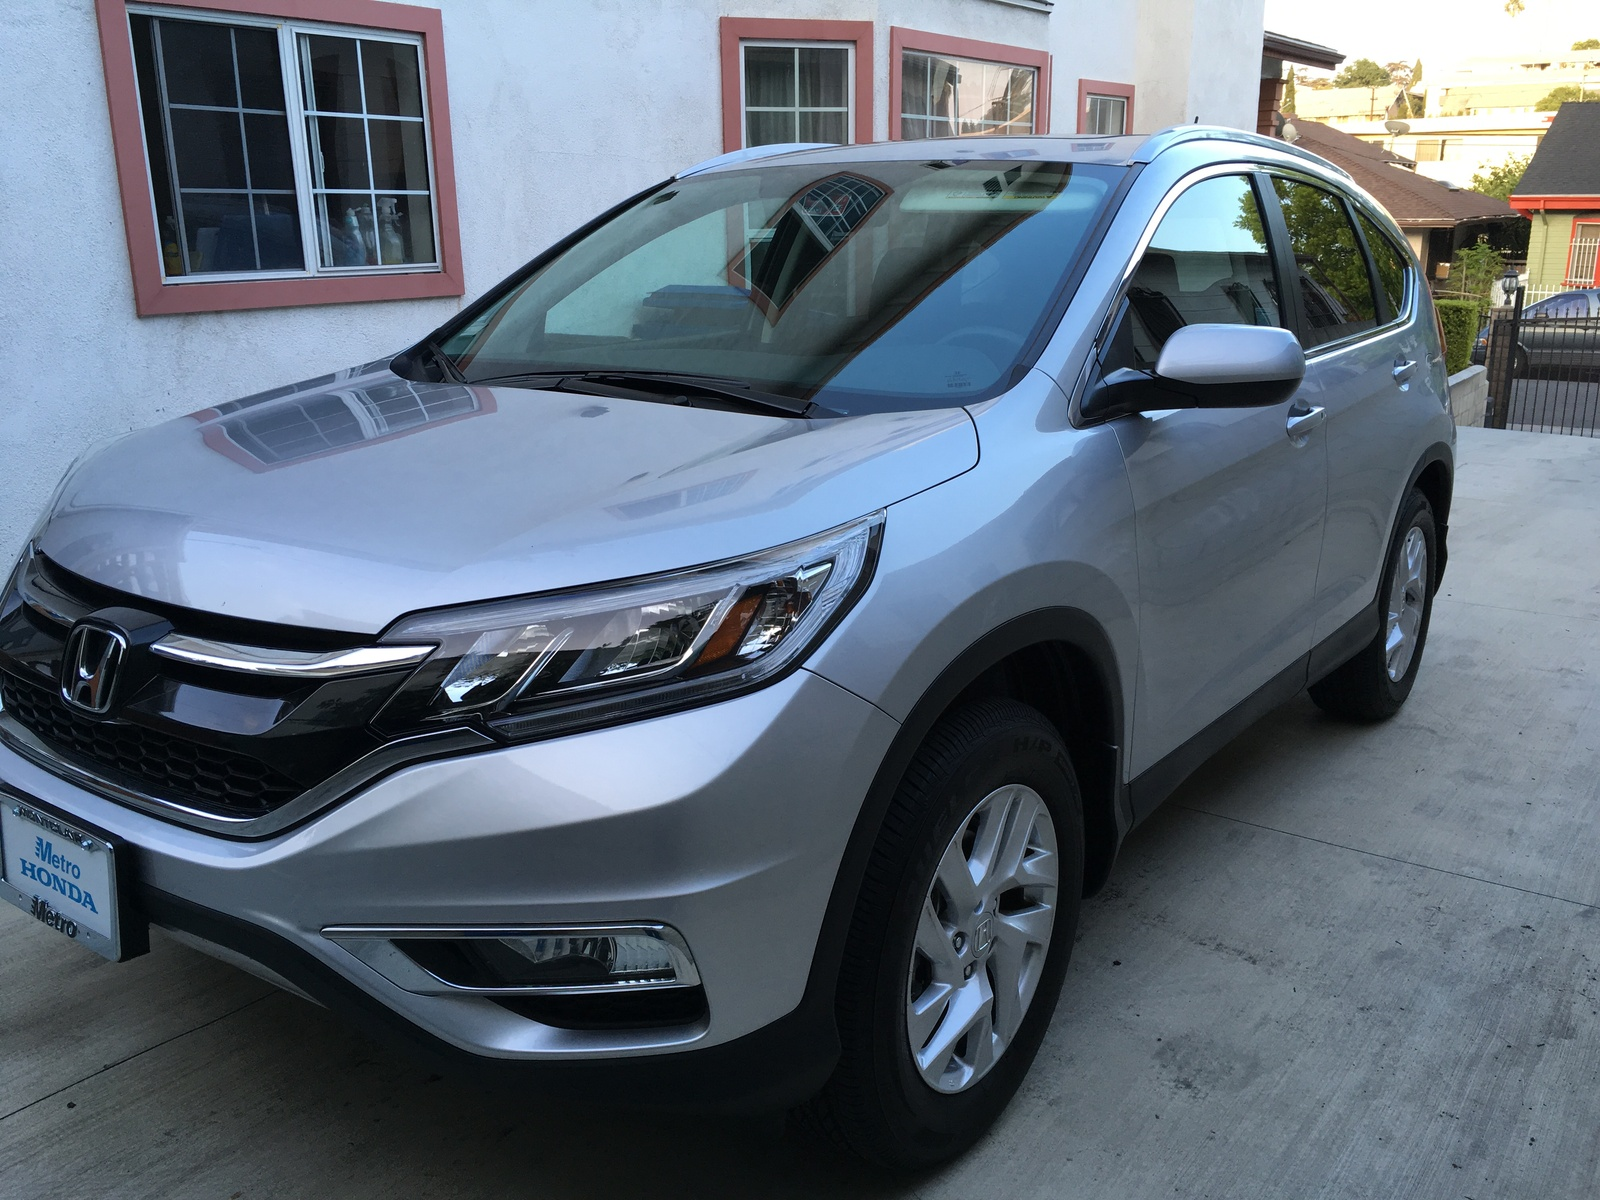 2016 honda cr v for sale in your area cargurus canada for New honda crv for sale